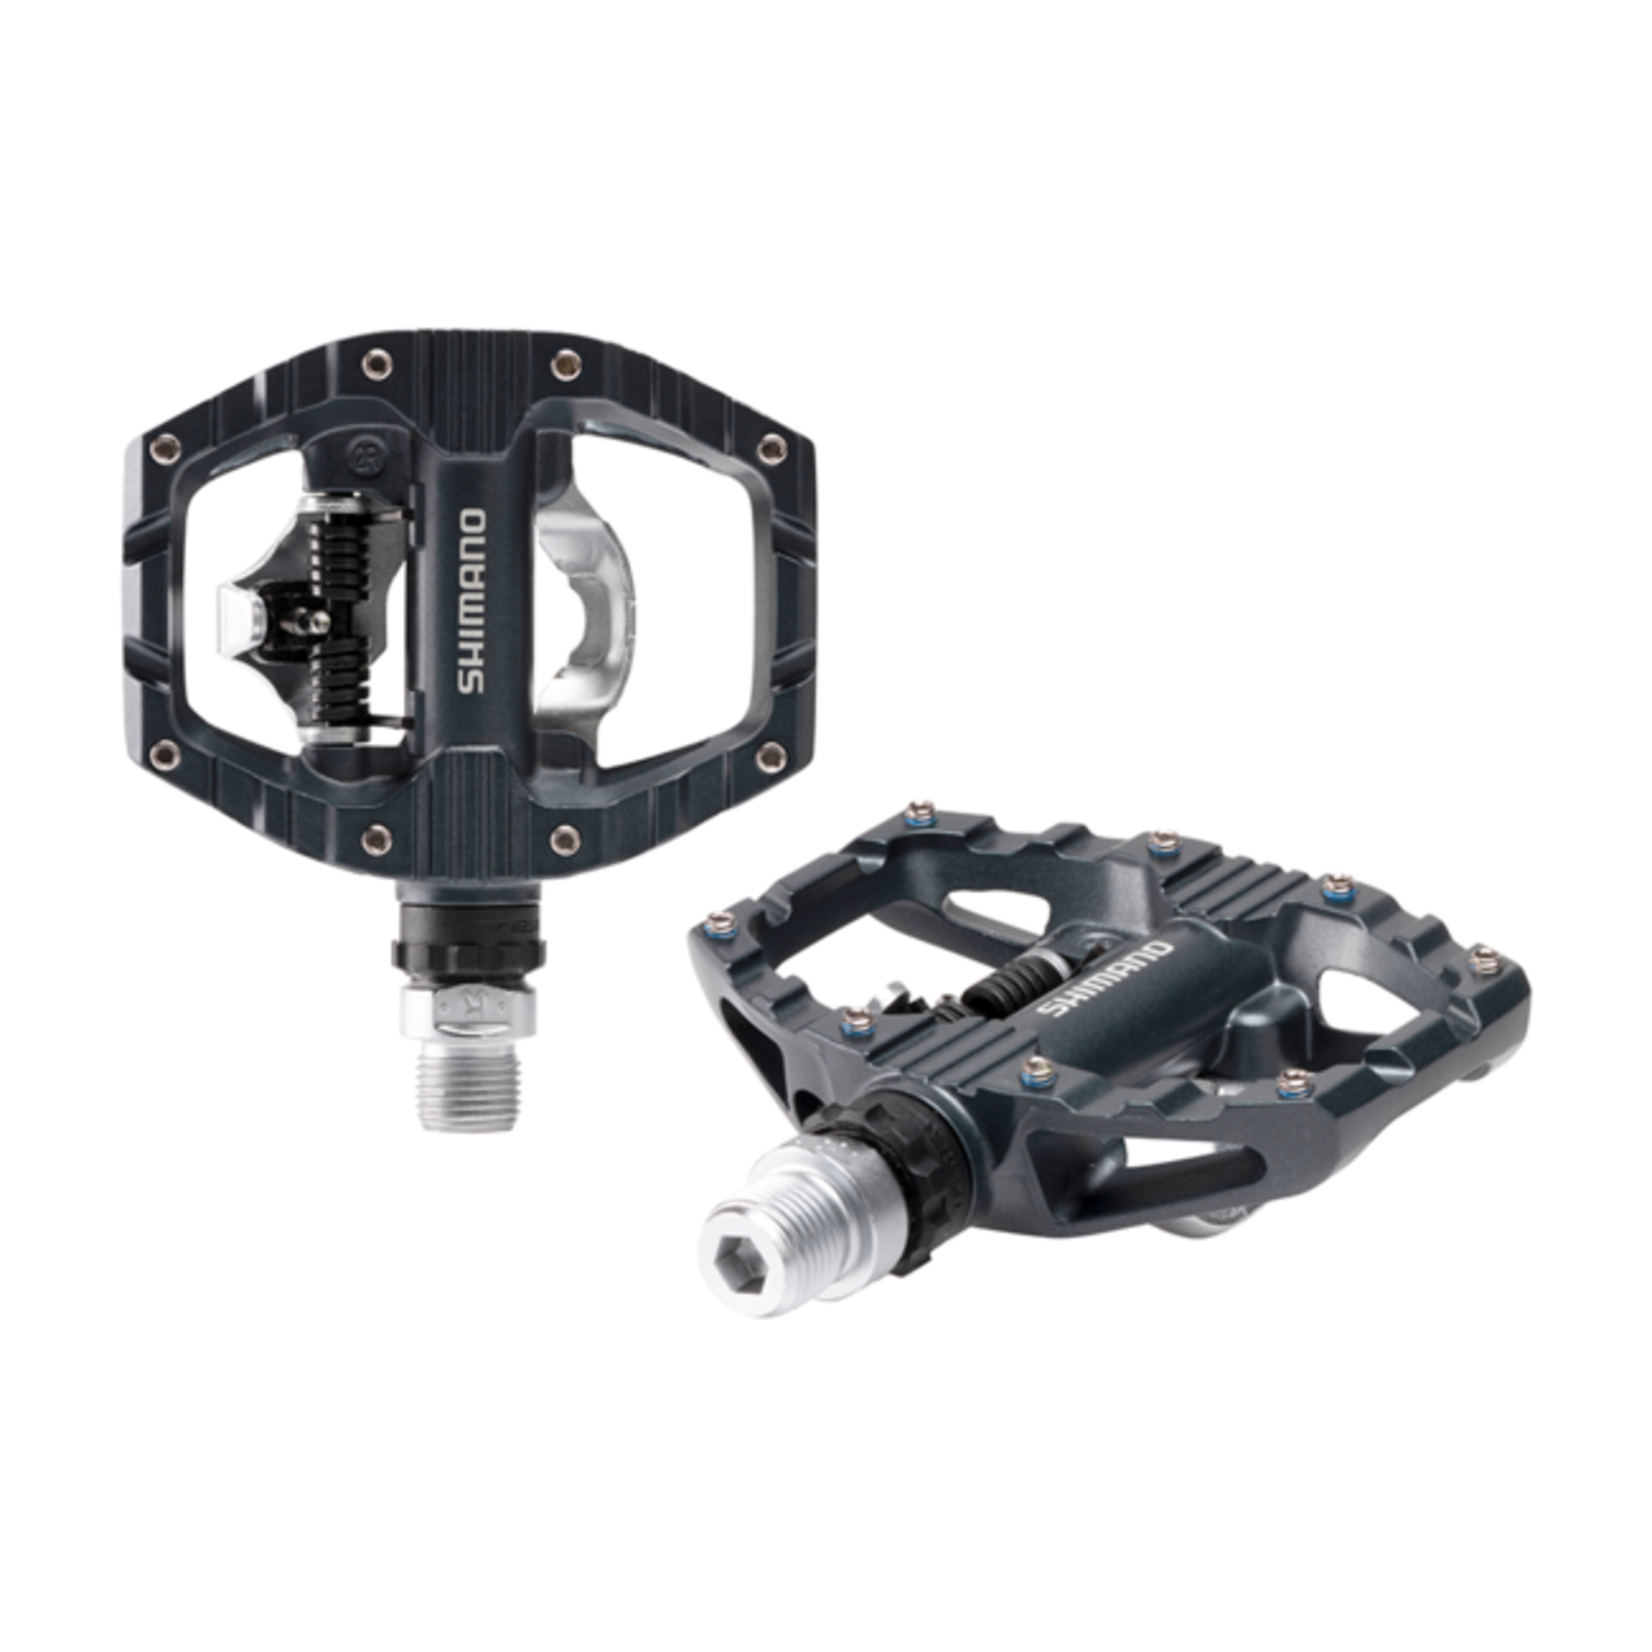 PEDALS Shimano pedal PD-EH500, SPD  W/CLEAT(SM-SH56